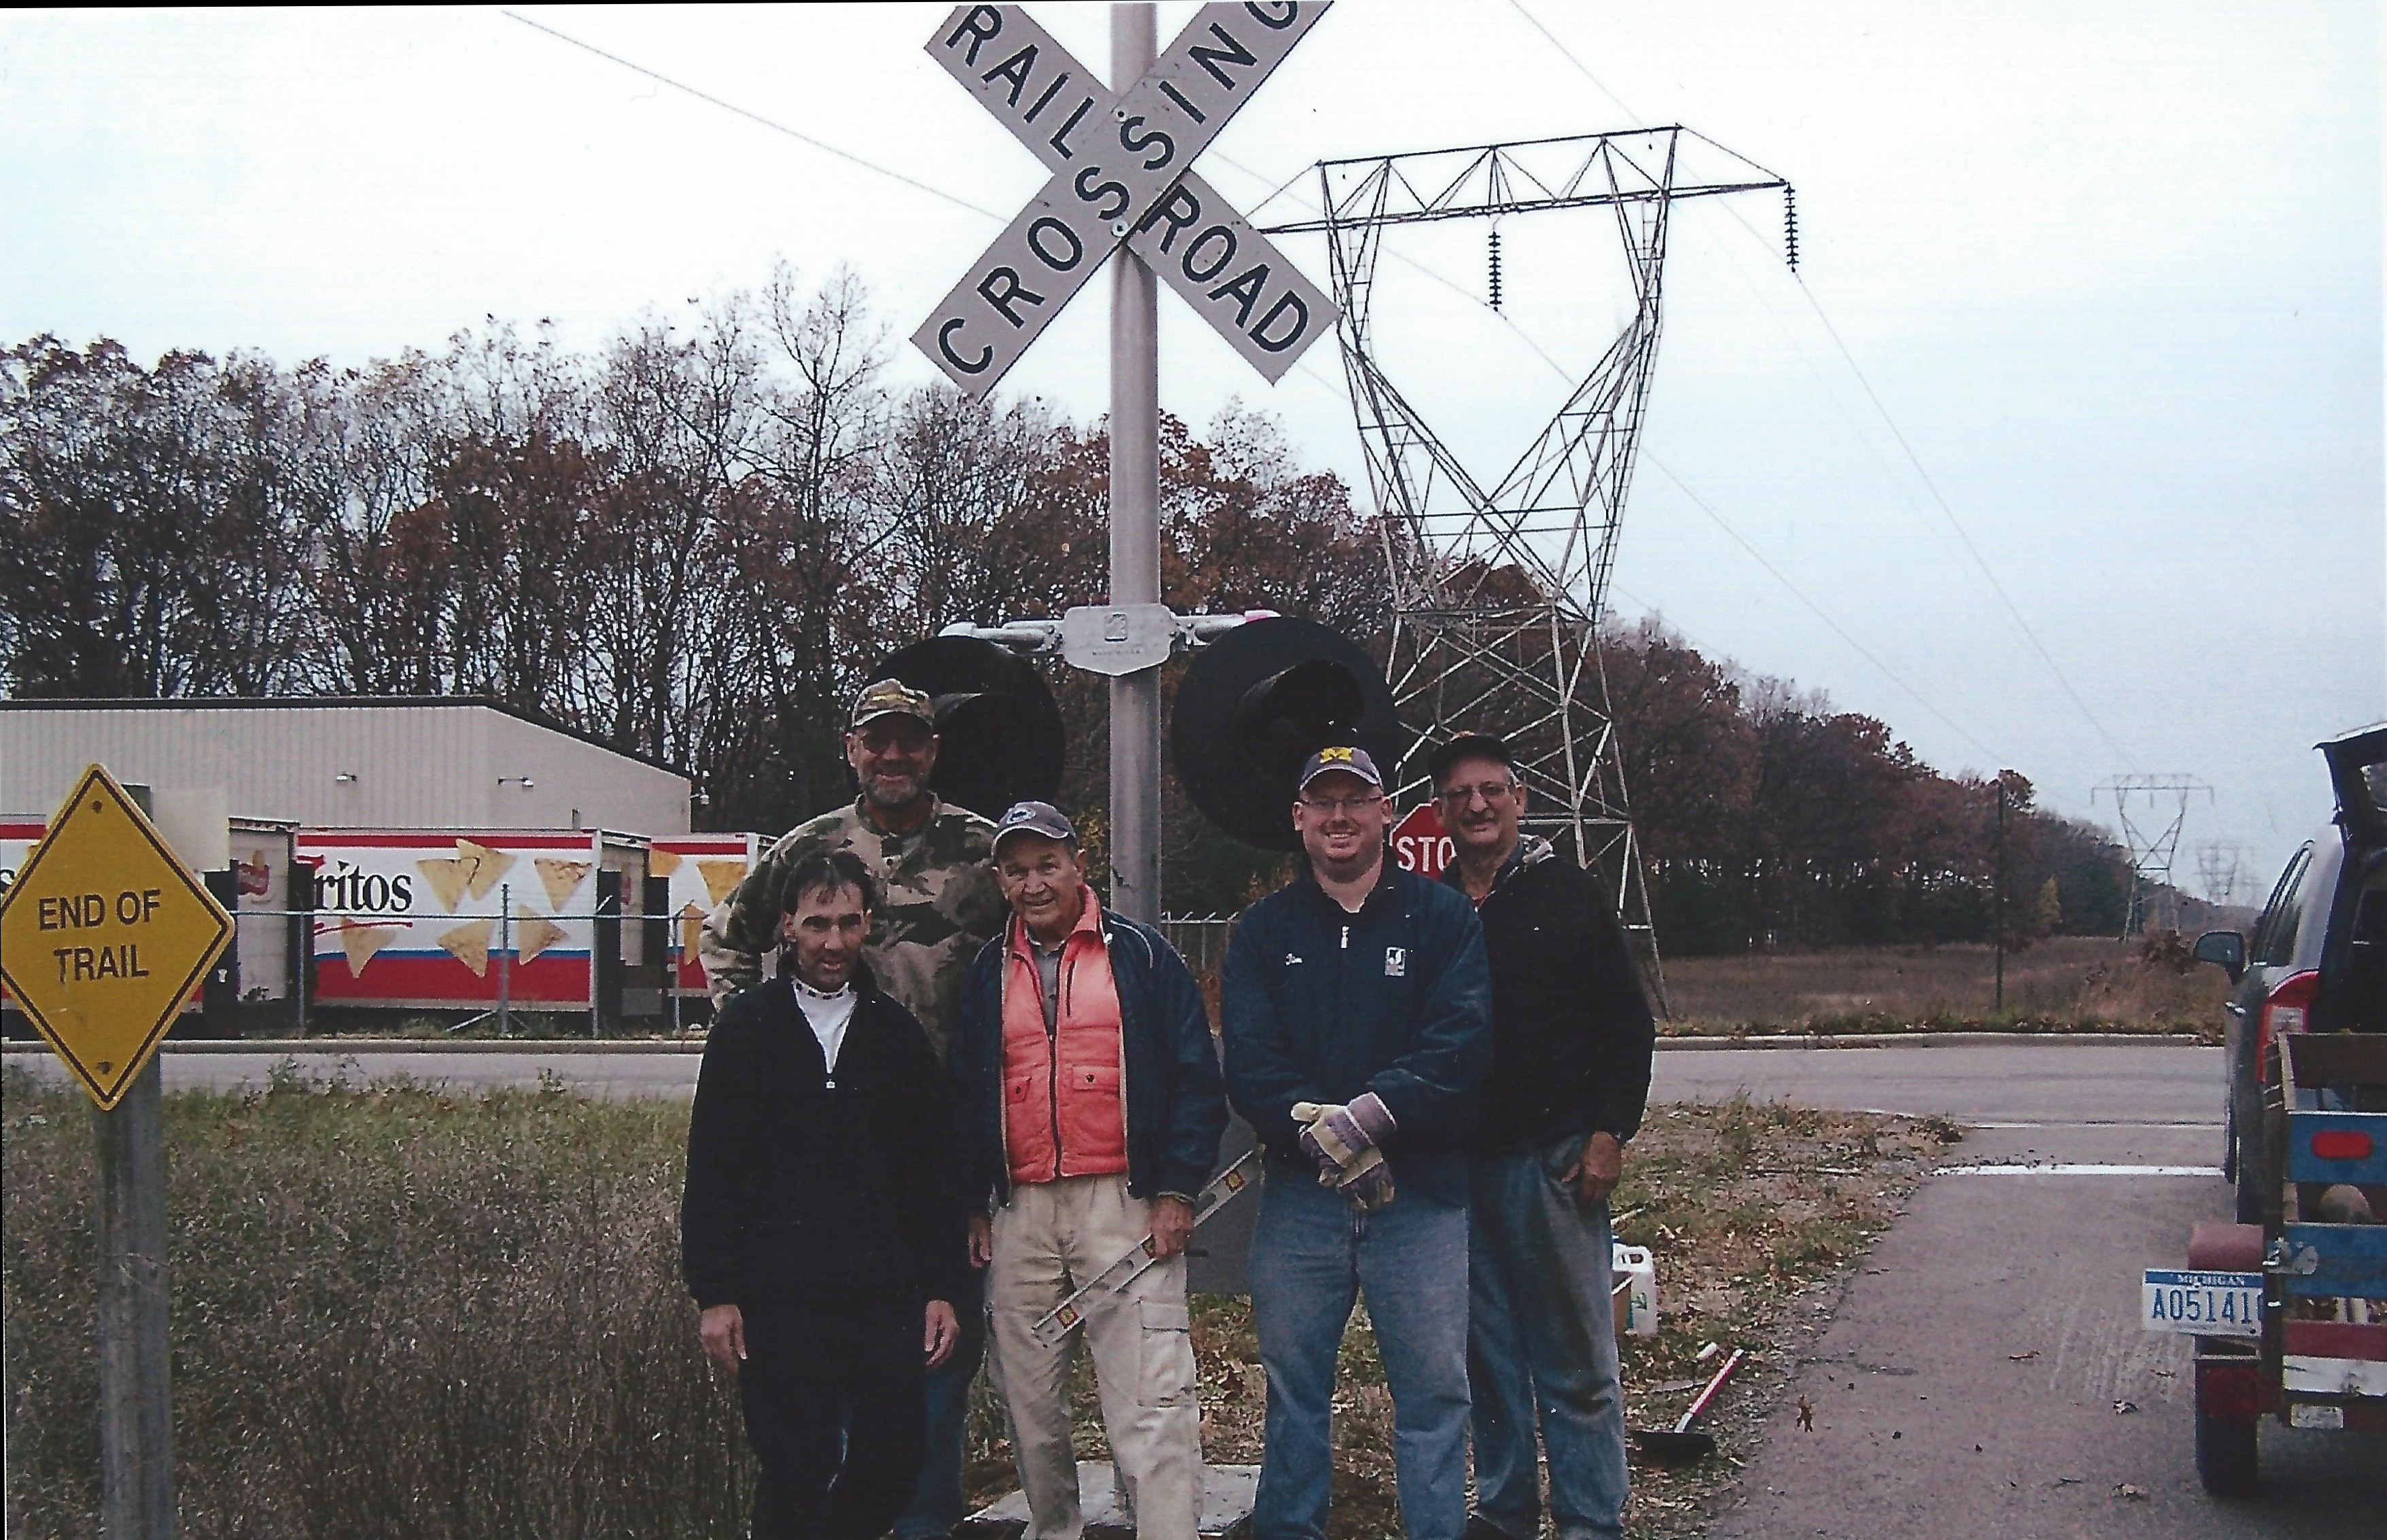 6. Volunteer Project at Black Creek Drive - End of Trail